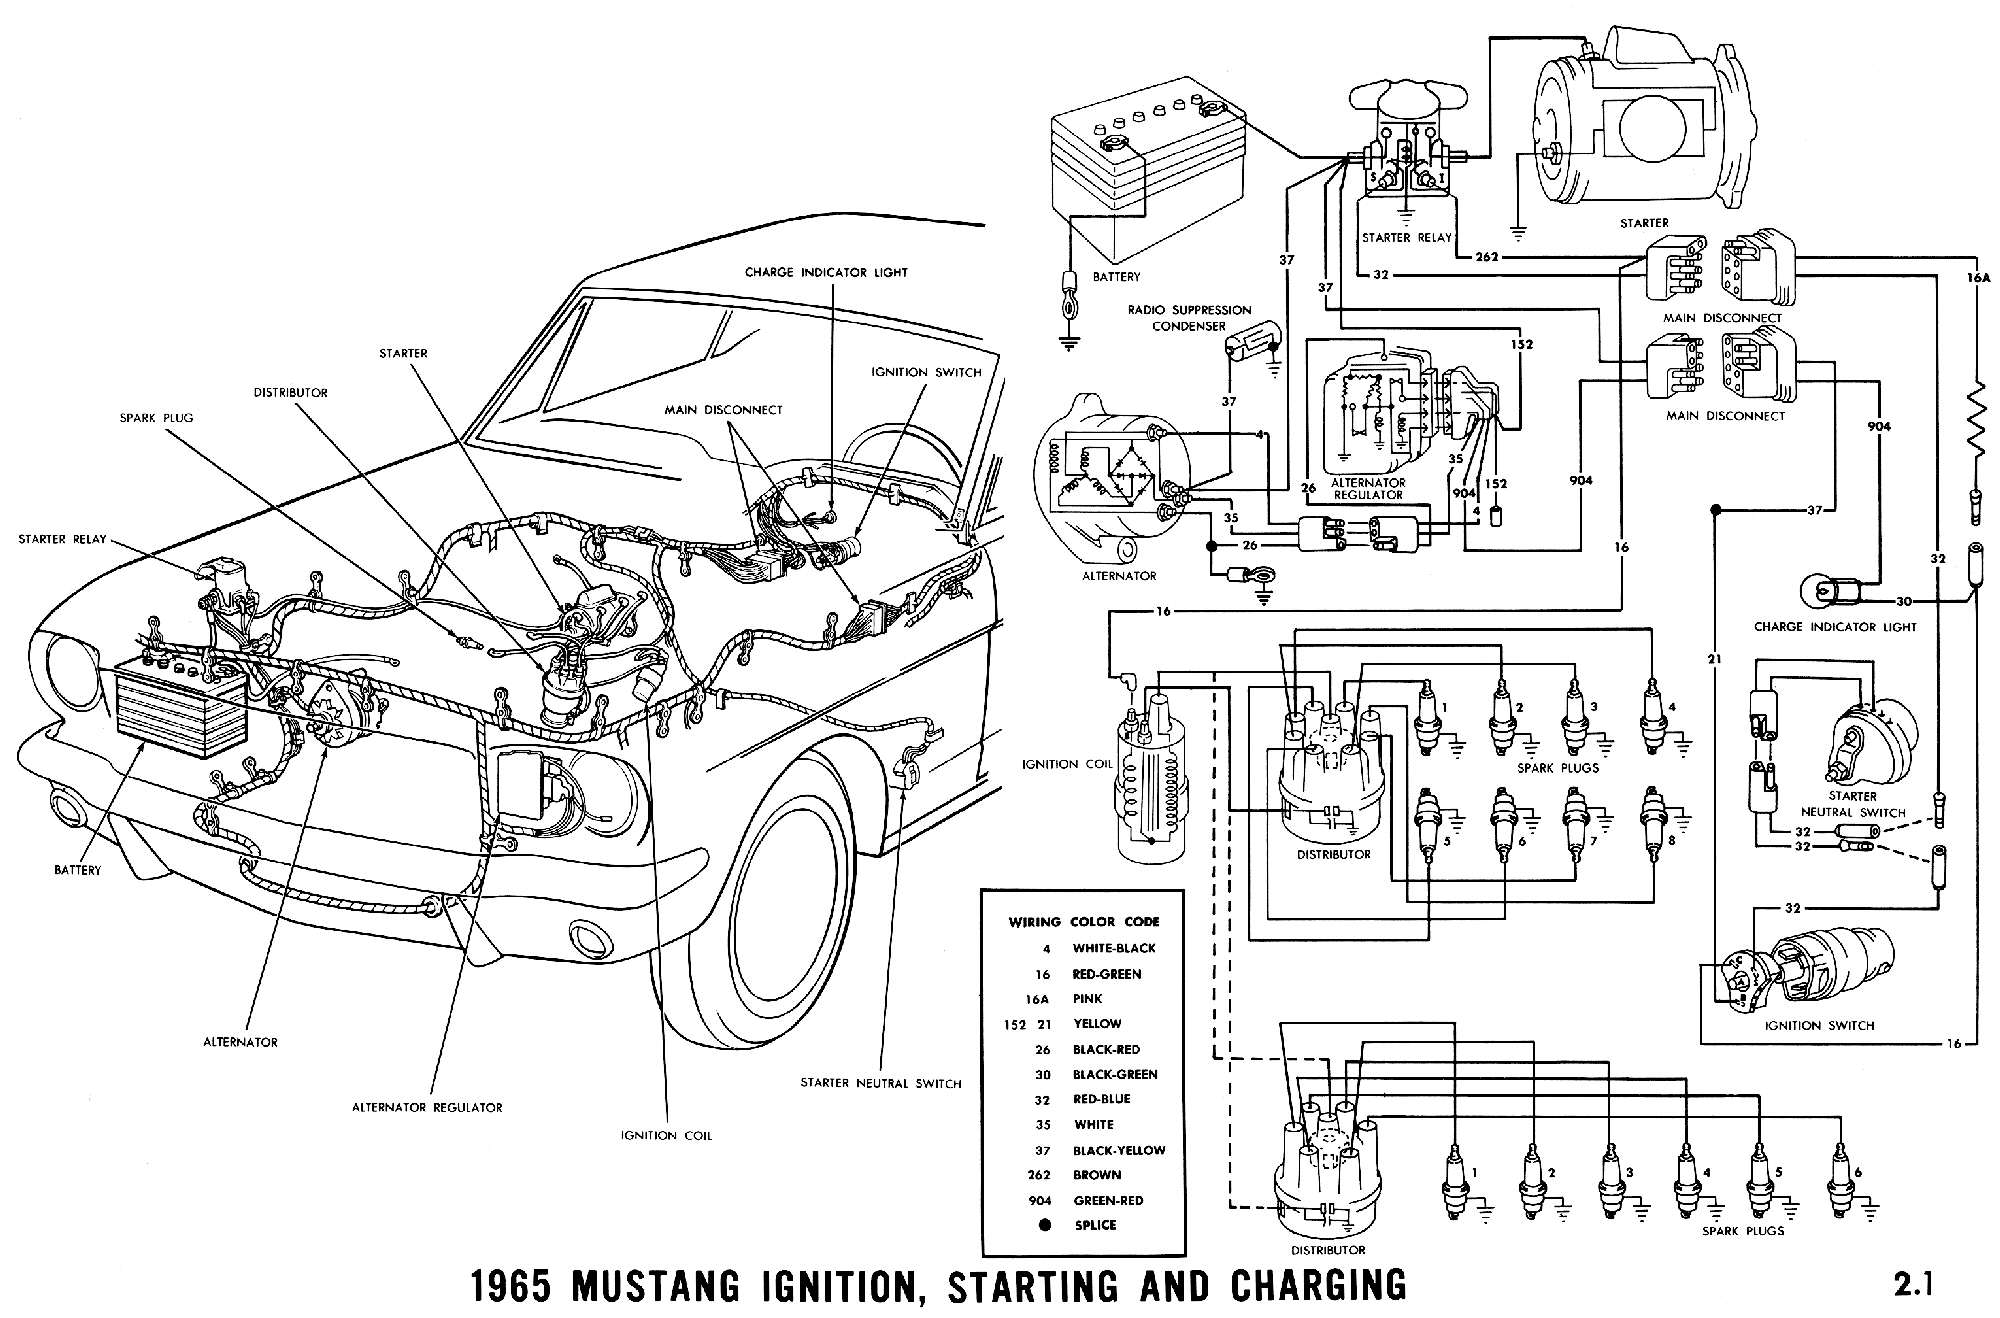 1965c 65 mustang dash wiring diagram 1965 ford mustang wiring diagram 2005 ford mustang instrument cluster wiring diagram at virtualis.co